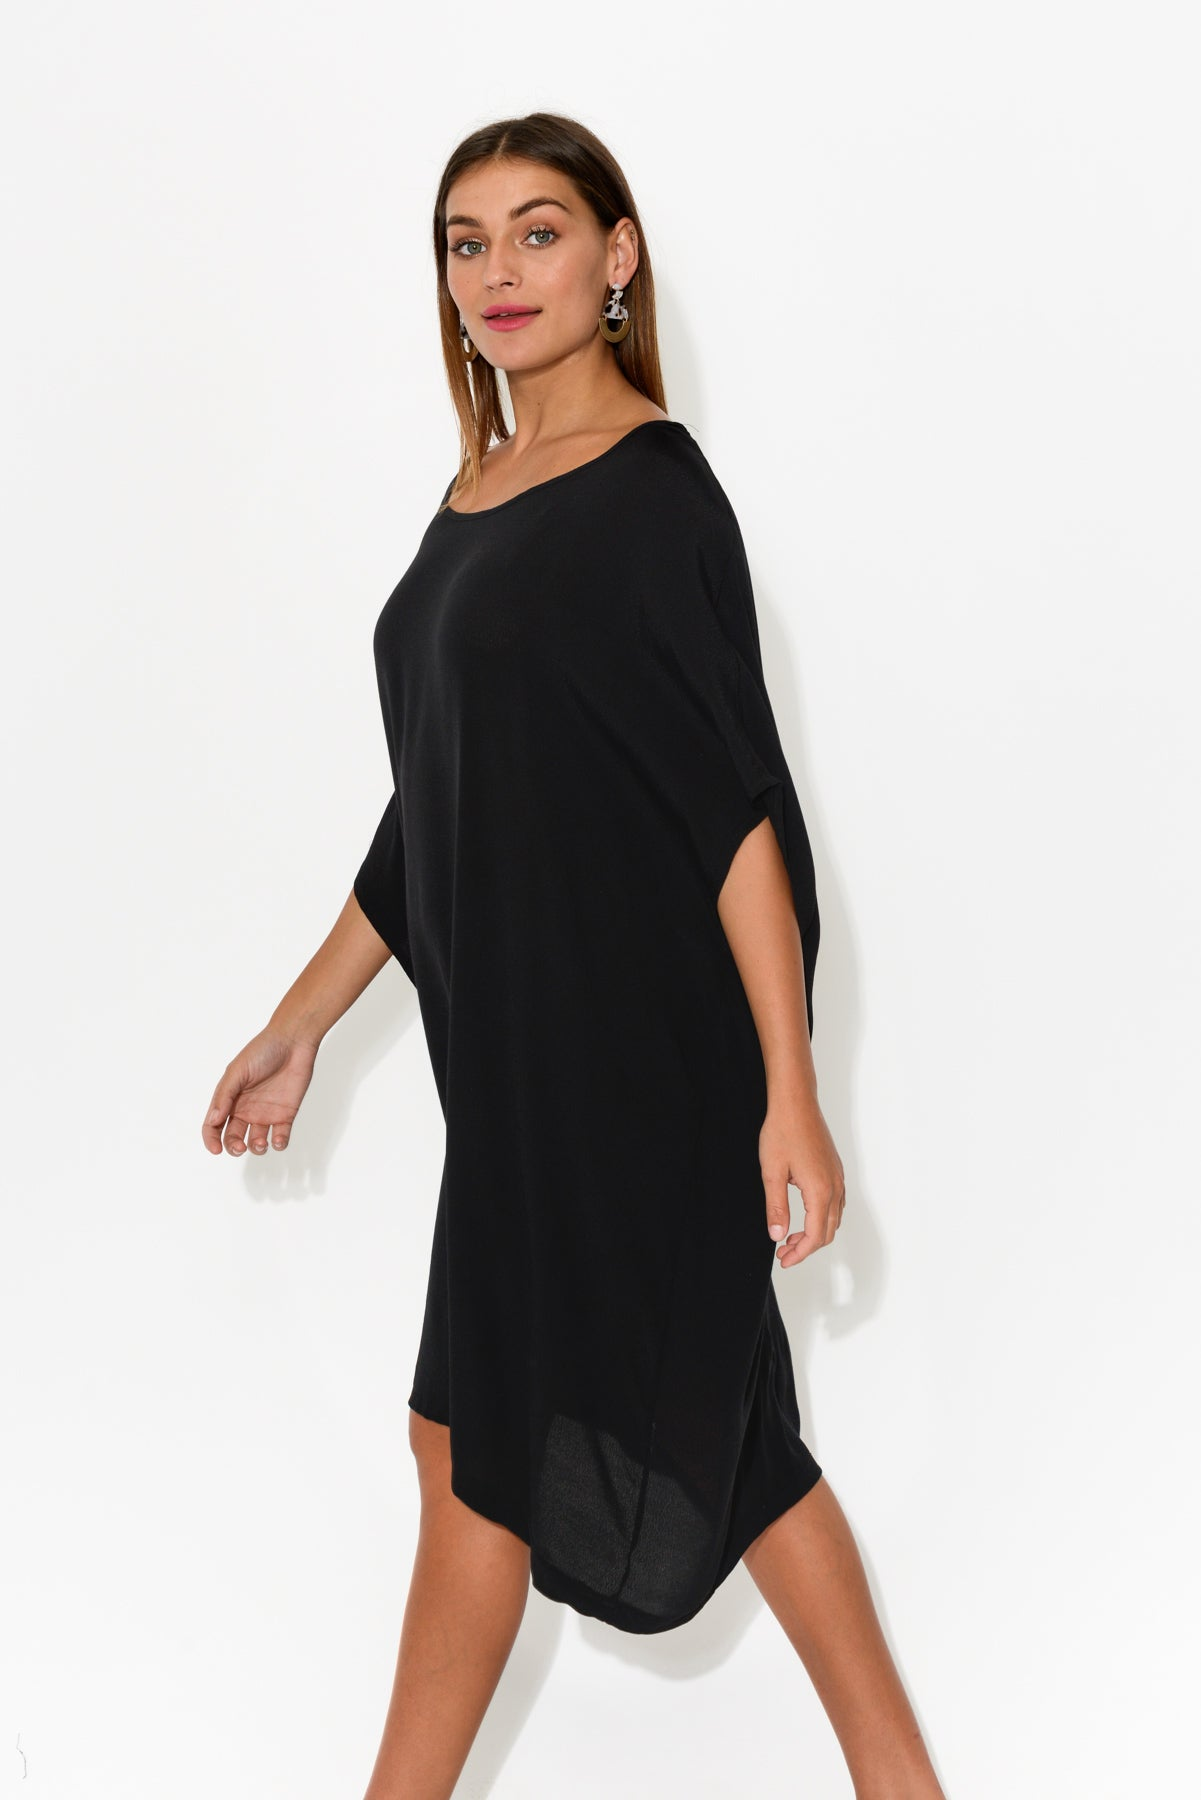 Zola Black Drape Dress